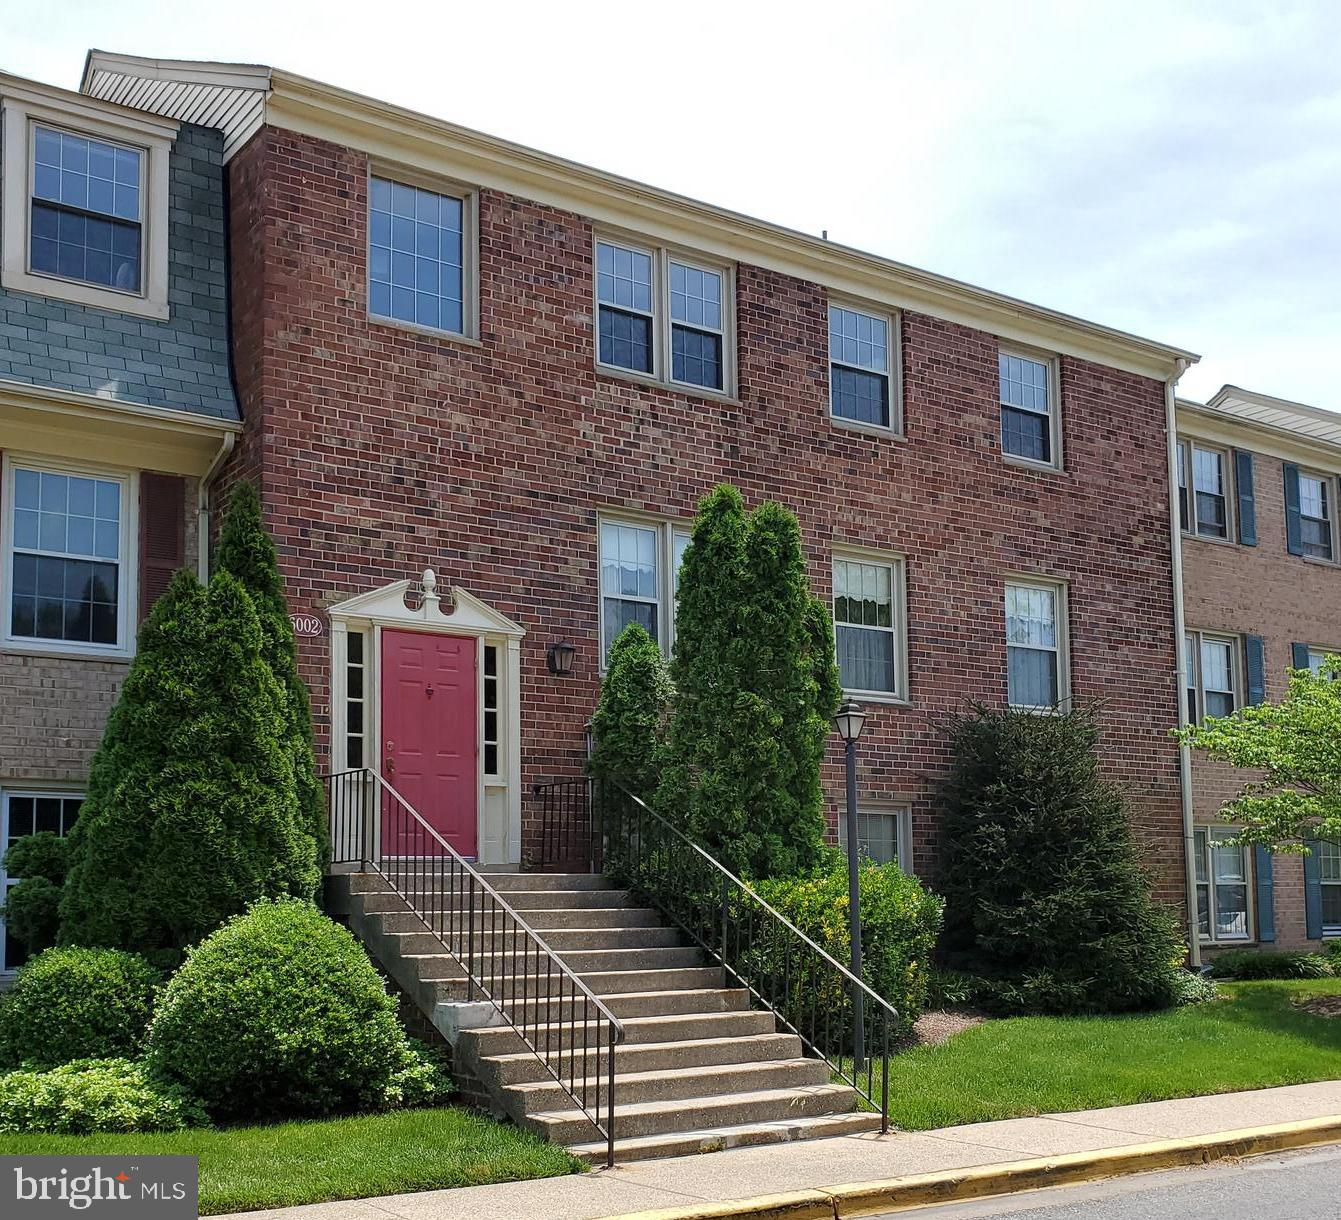 Welcome to this conveniently located condo development in the Westchester Park Community near Colleg